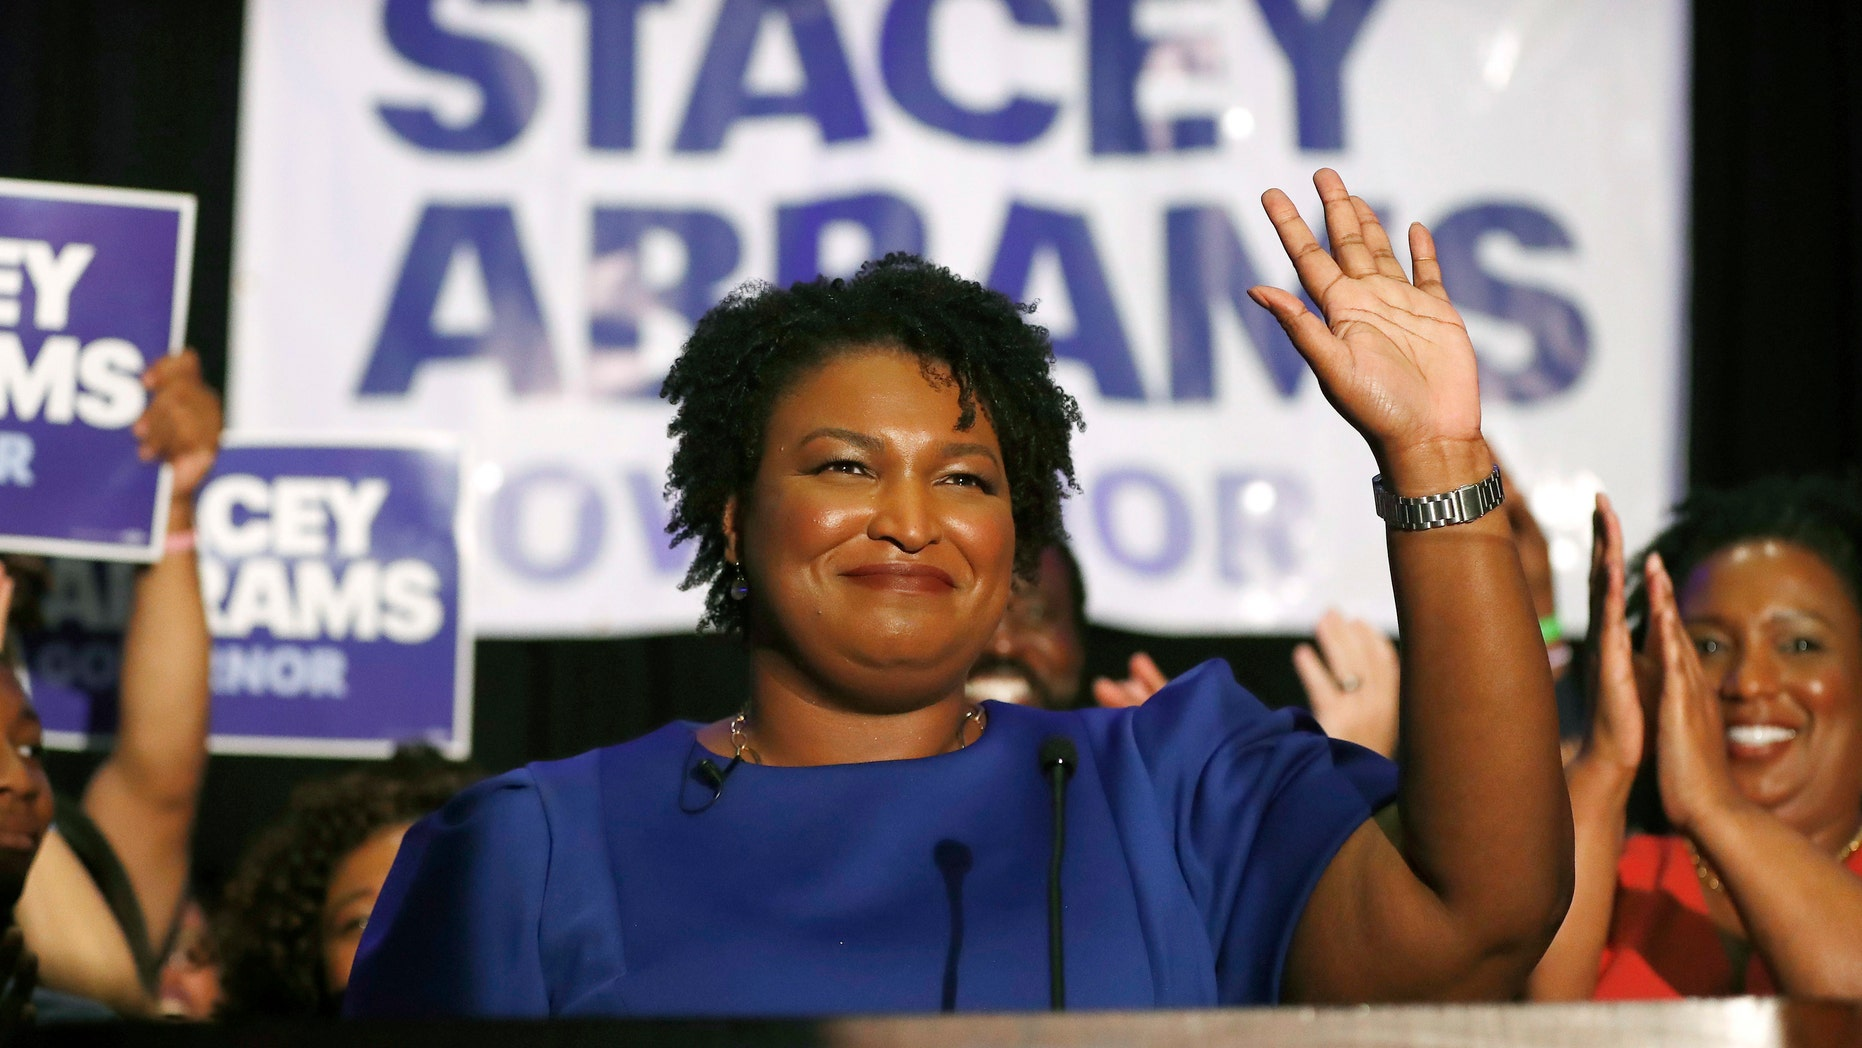 NY Times: Stacey Abrams Burned Georgia's Flag in 1992 Protest